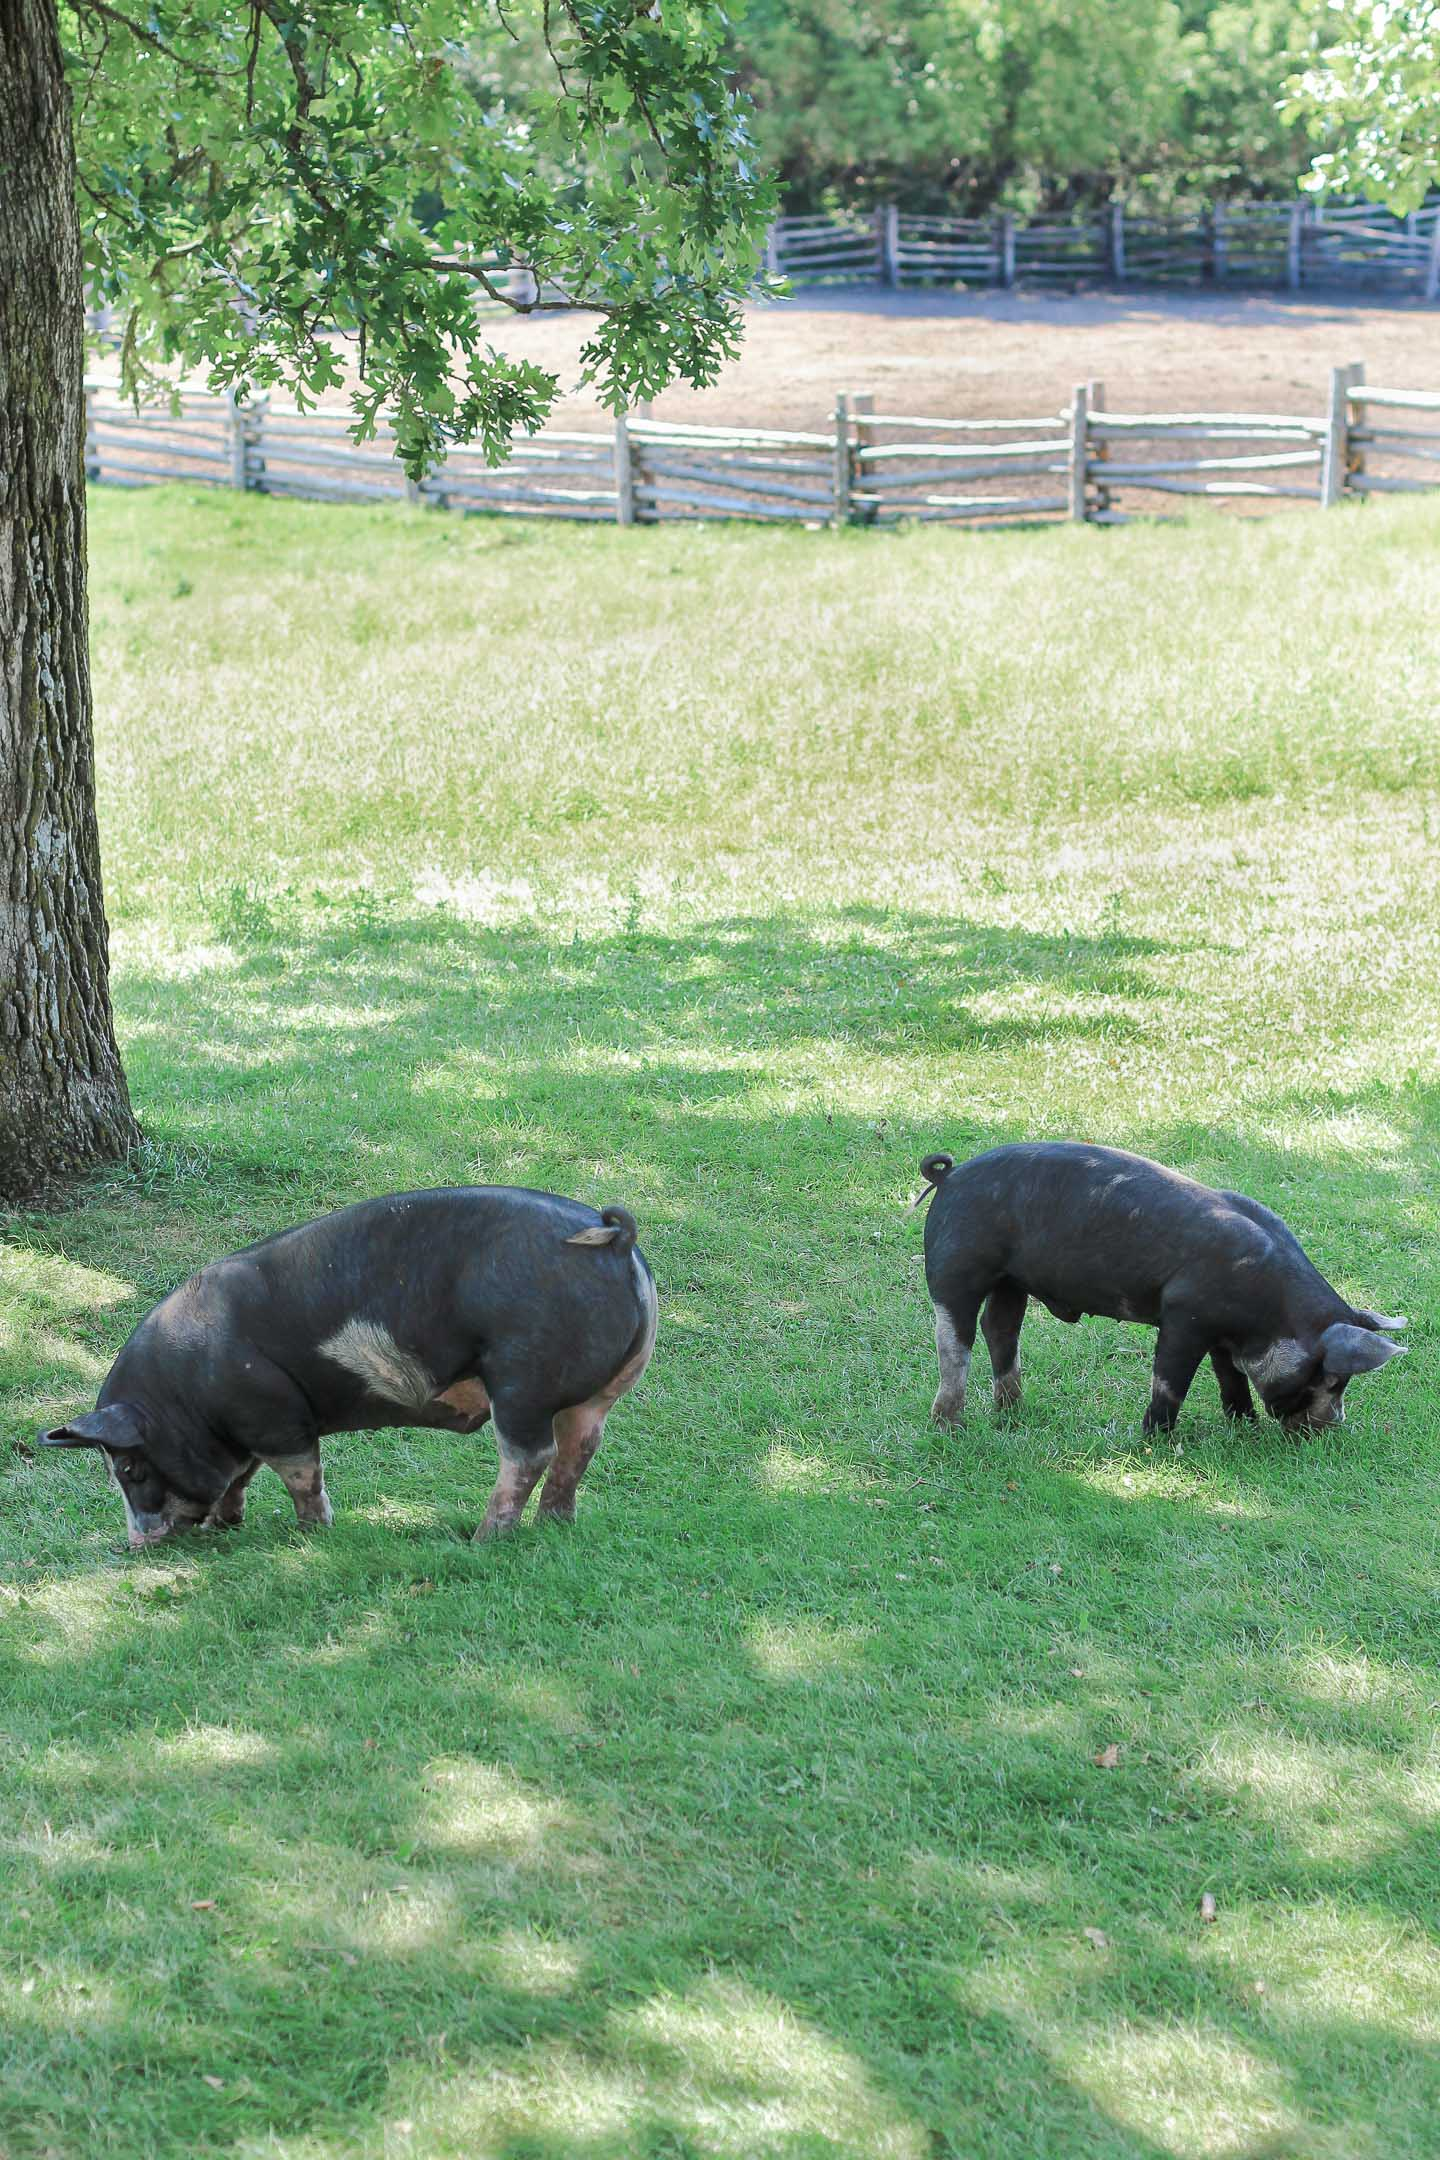 Two pigs in the grass.